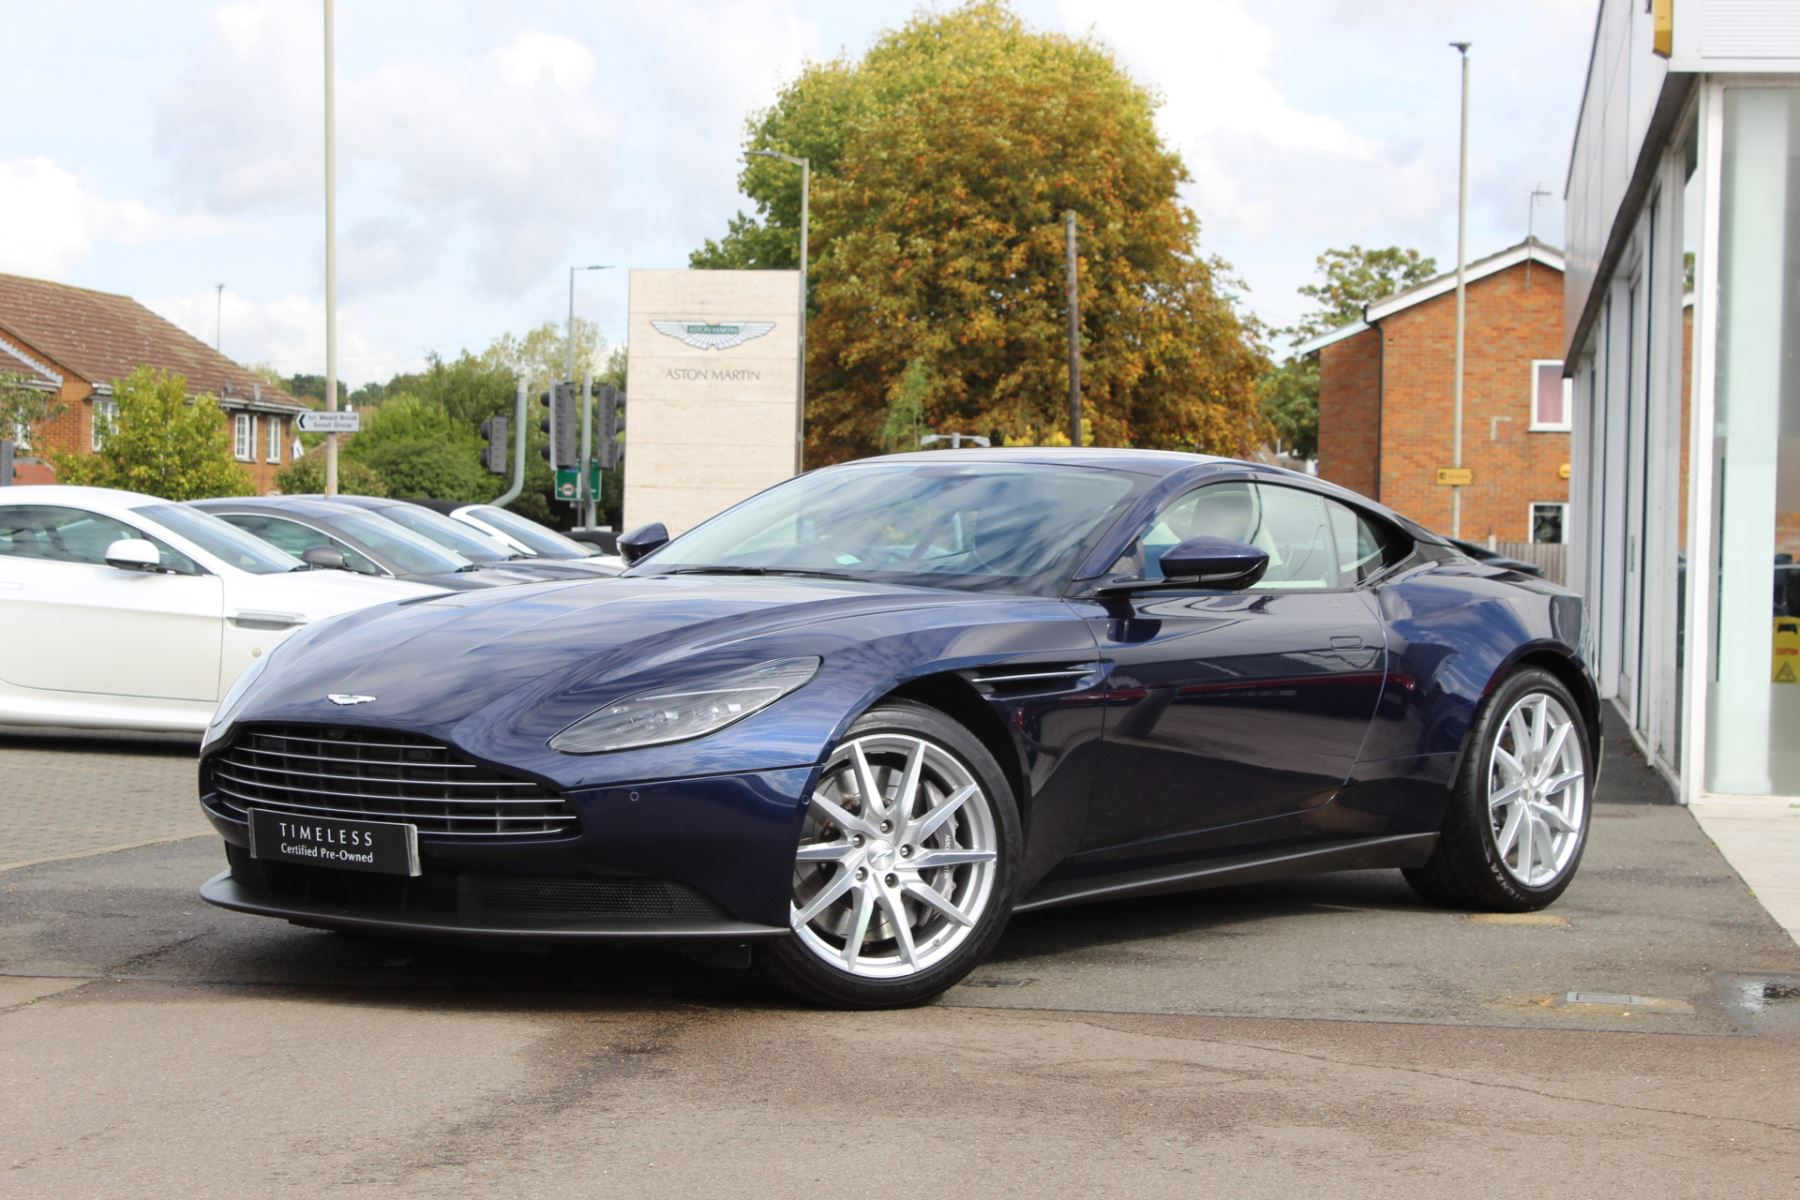 Aston Martin DB11 V8 2dr Touchtronic image 1